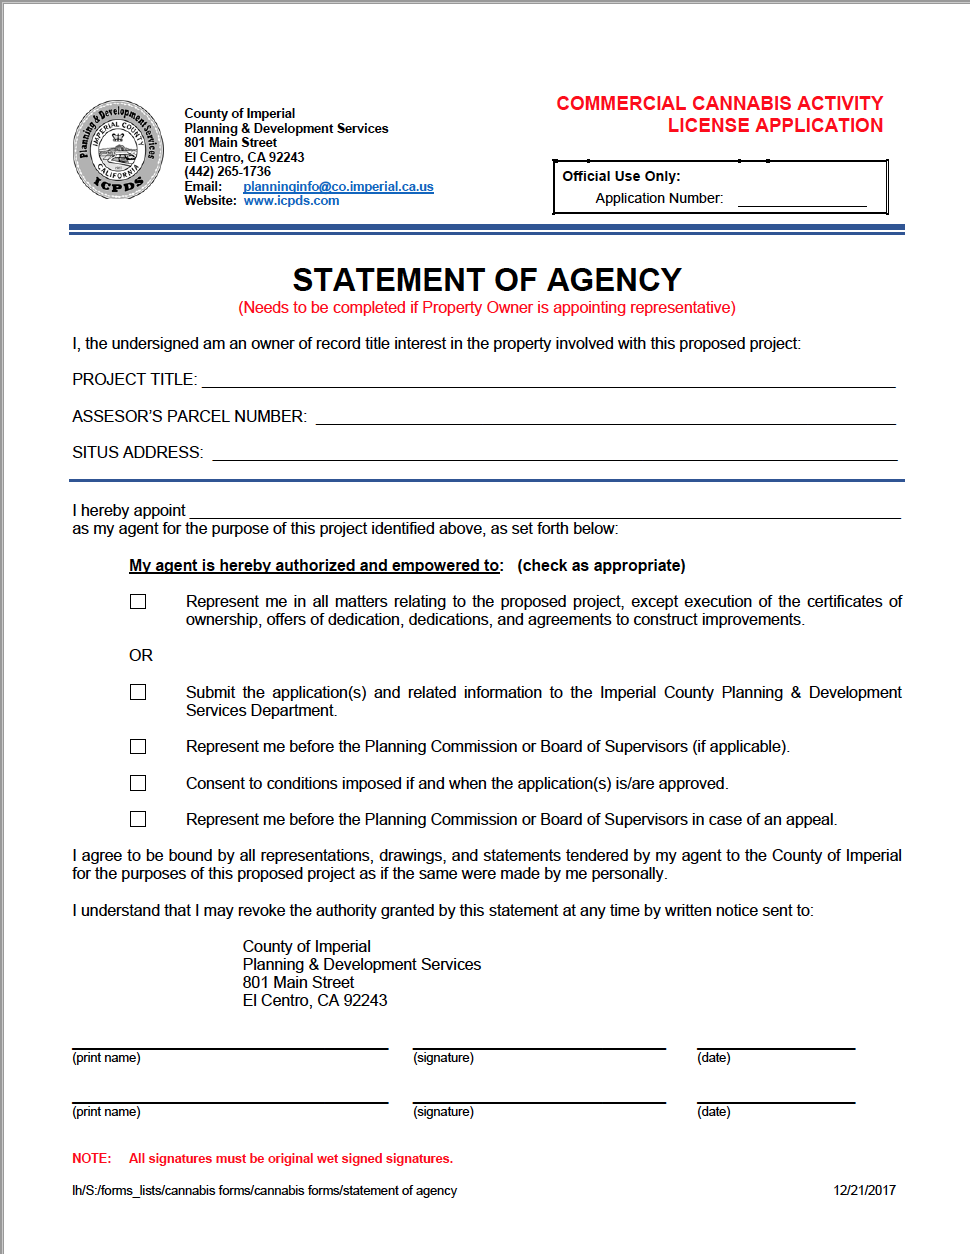 Statement of Agency.png